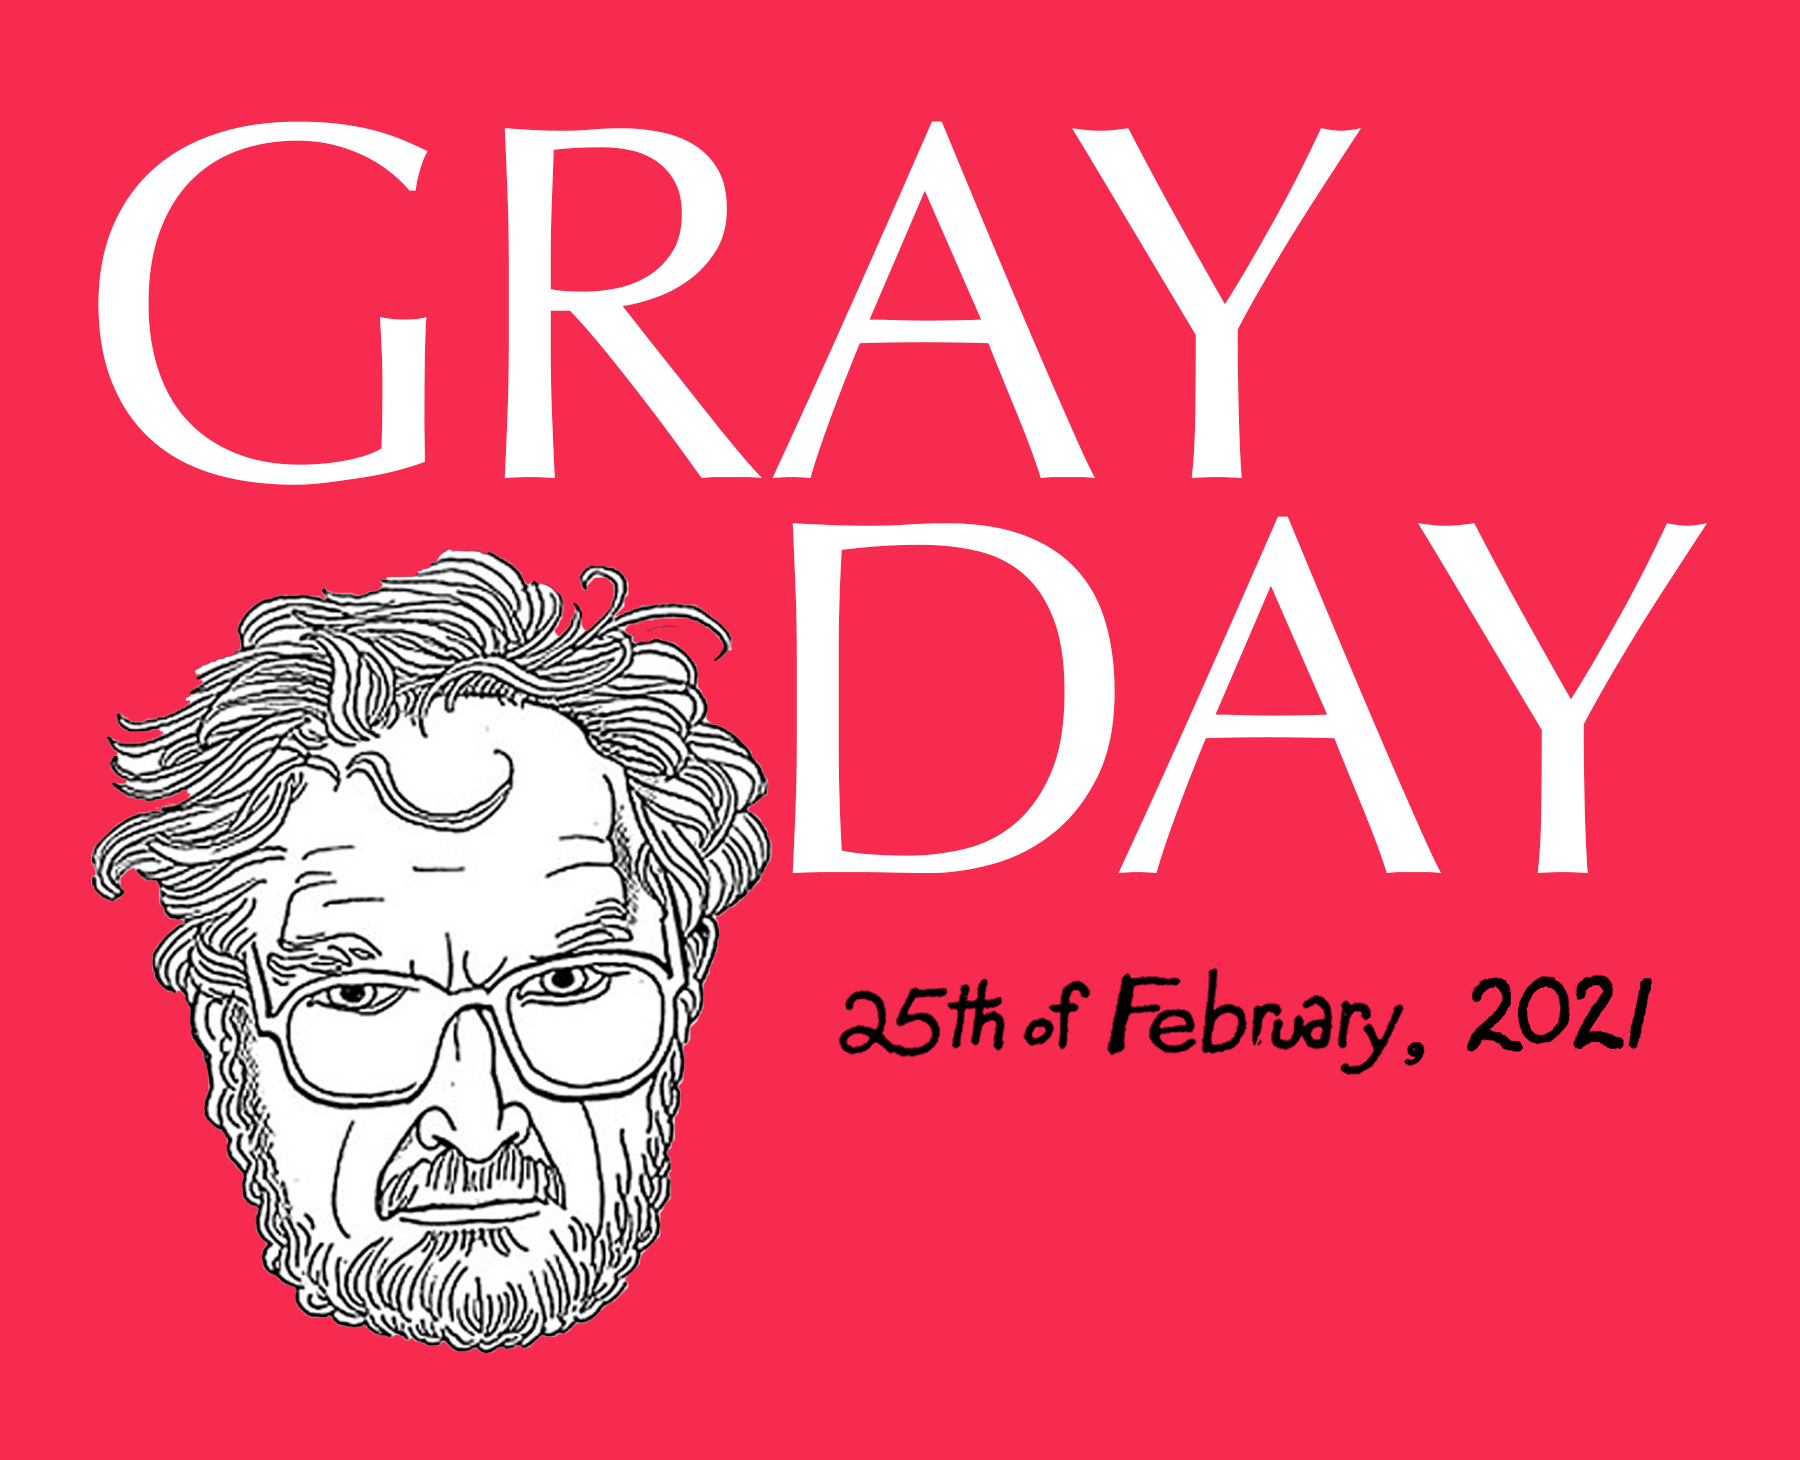 Gray Day - 25th of February 2021